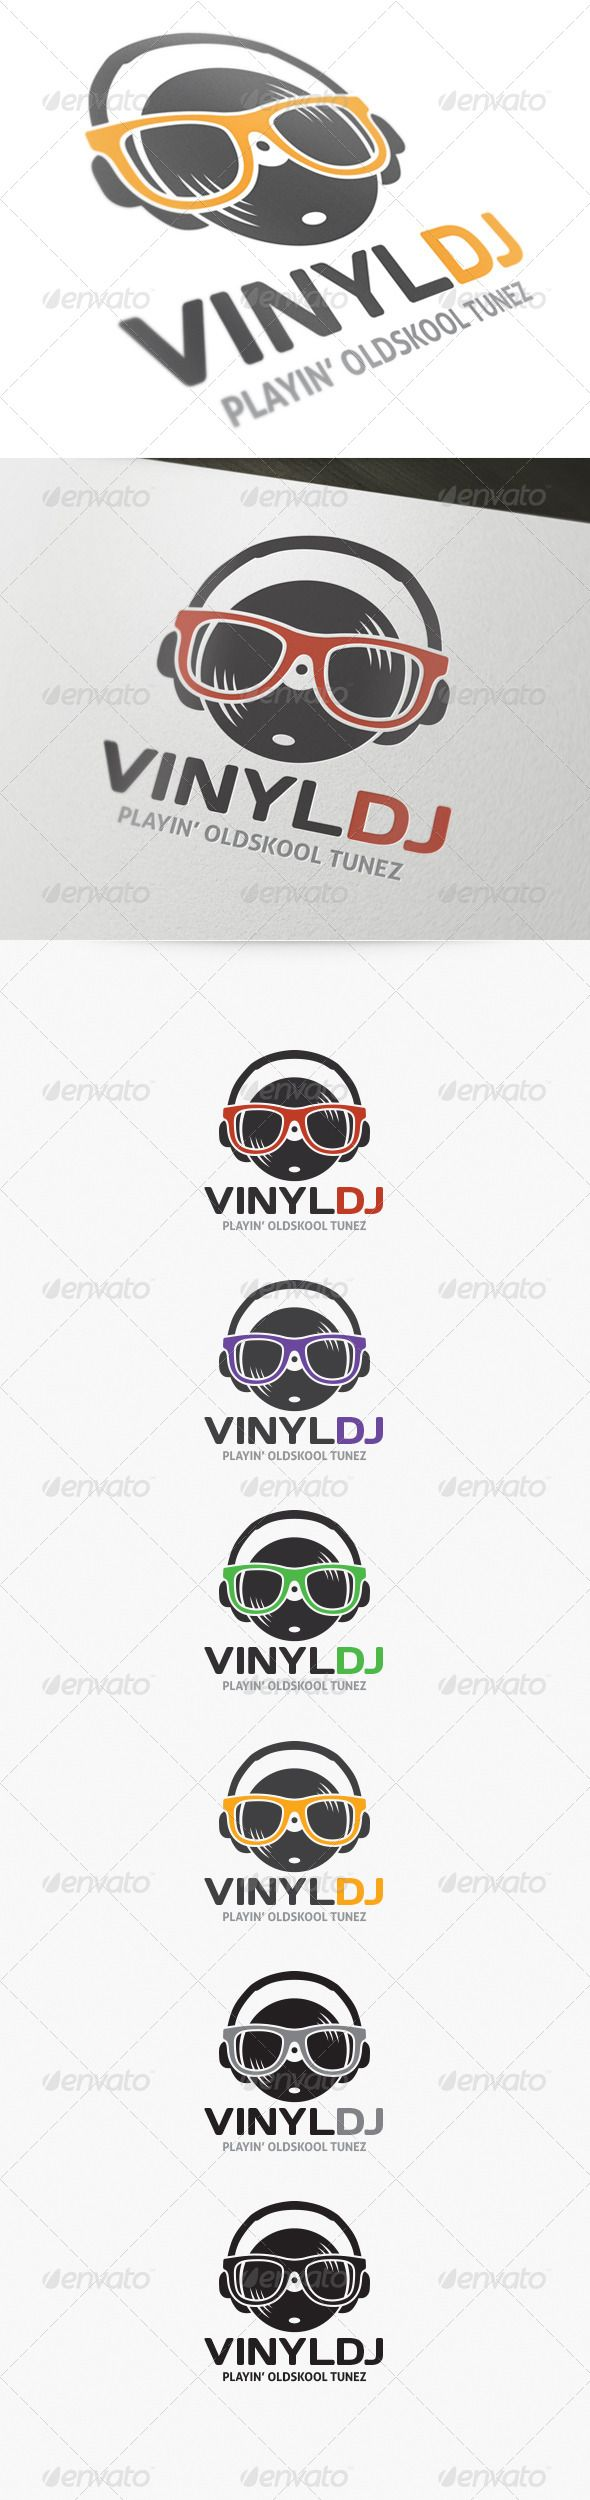 Vinyl DJ Logo - Not a great logo. Too Much going on. Very similar to current concept though.